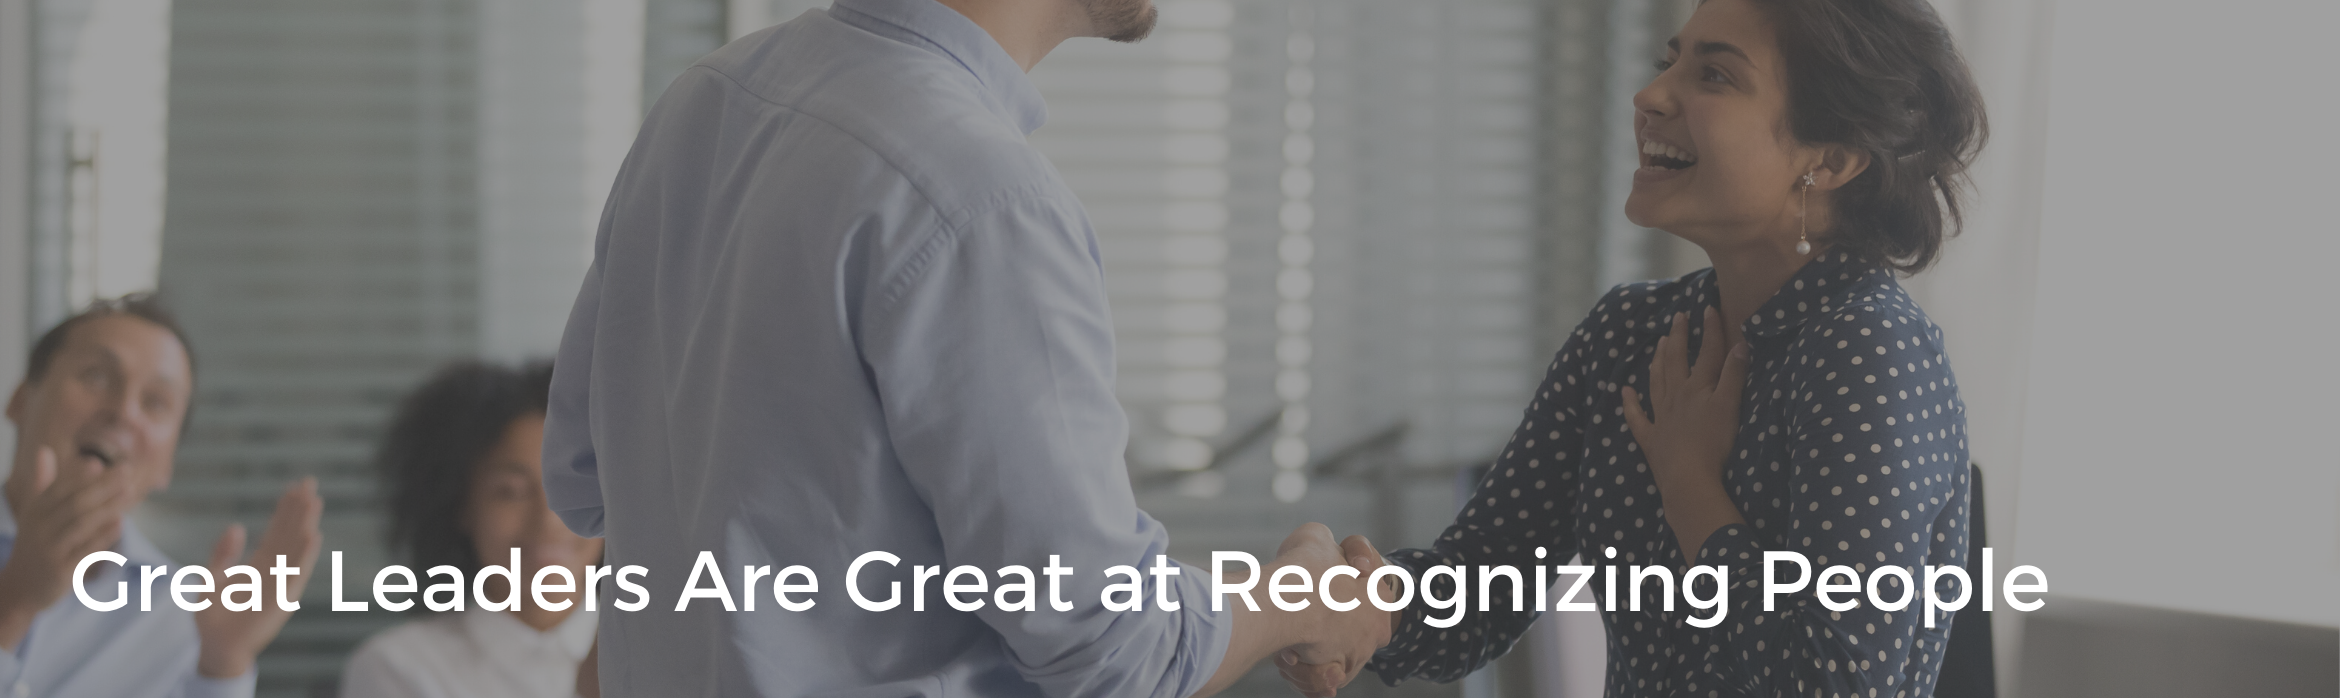 Great Leaders Are Great at Recognizing People